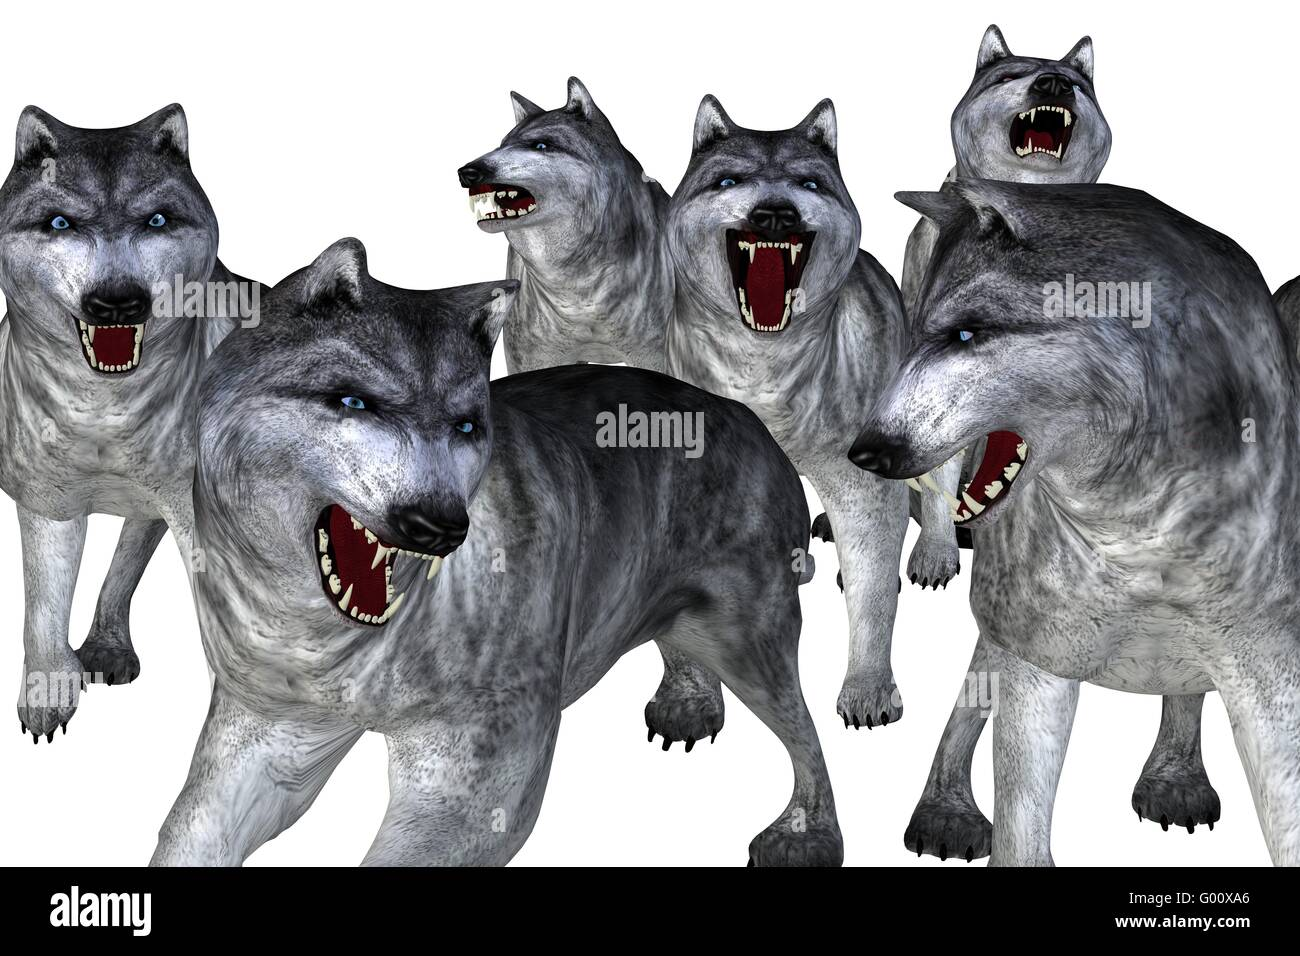 Wolves - Stock Image